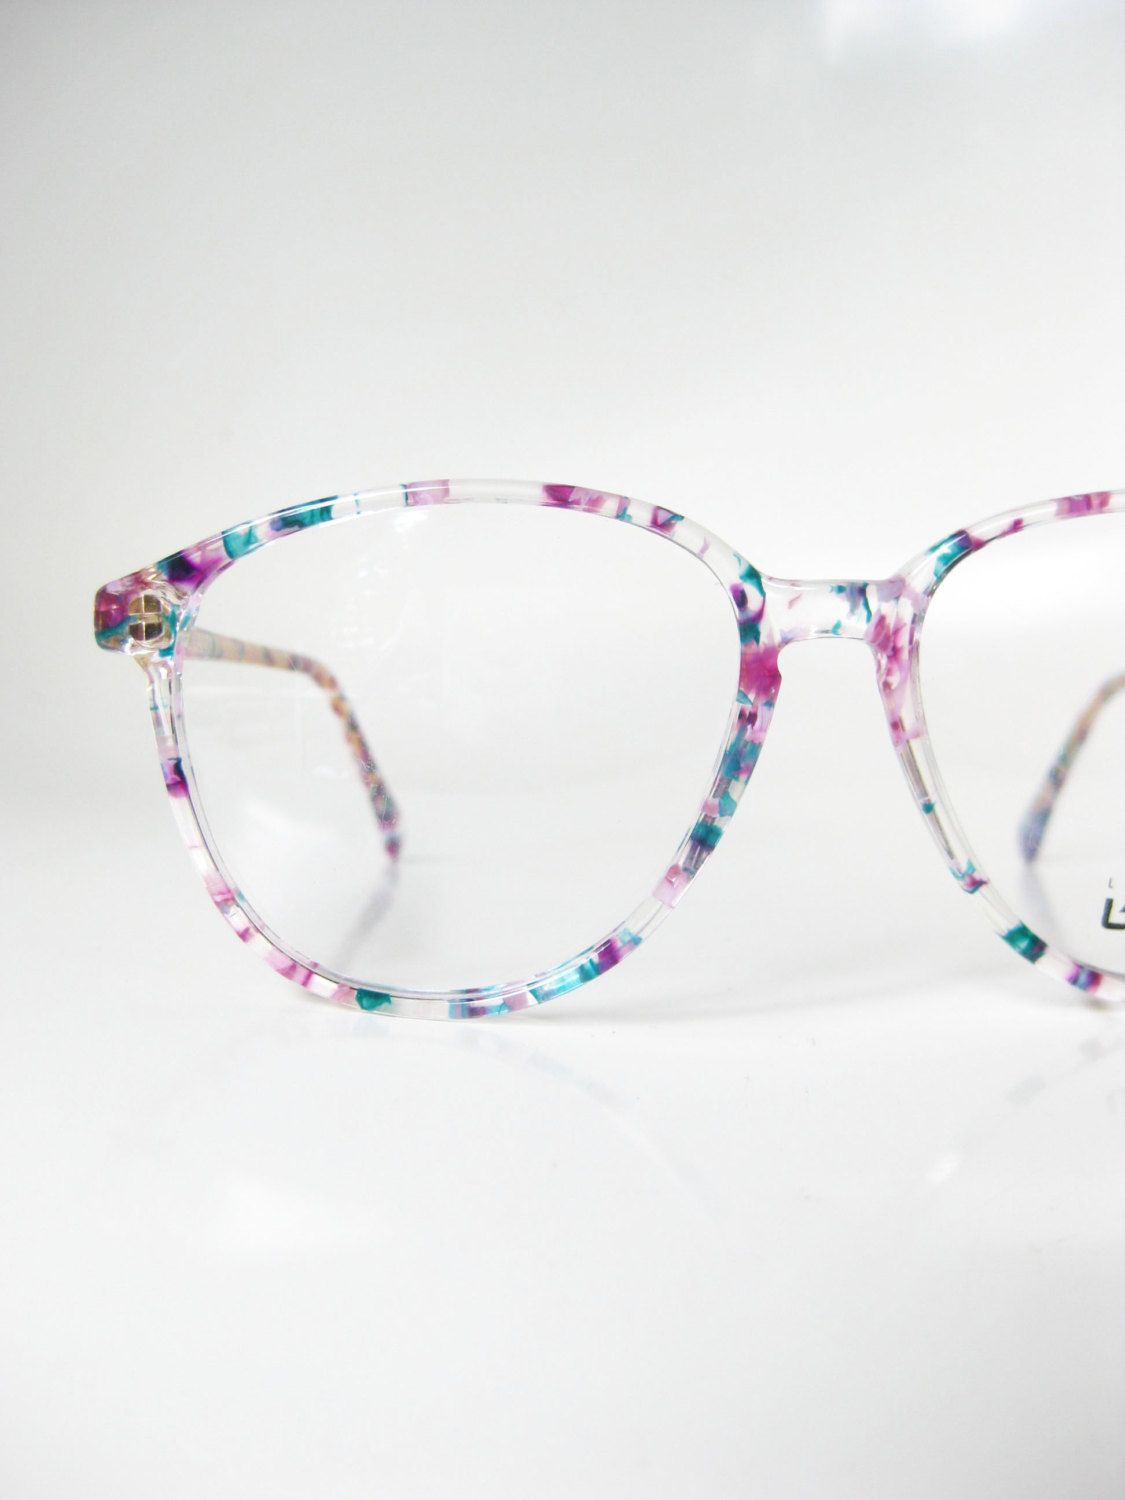 Pin by Megan Daniell on Cute Glasses in 2018 | Pinterest | Glasses ...